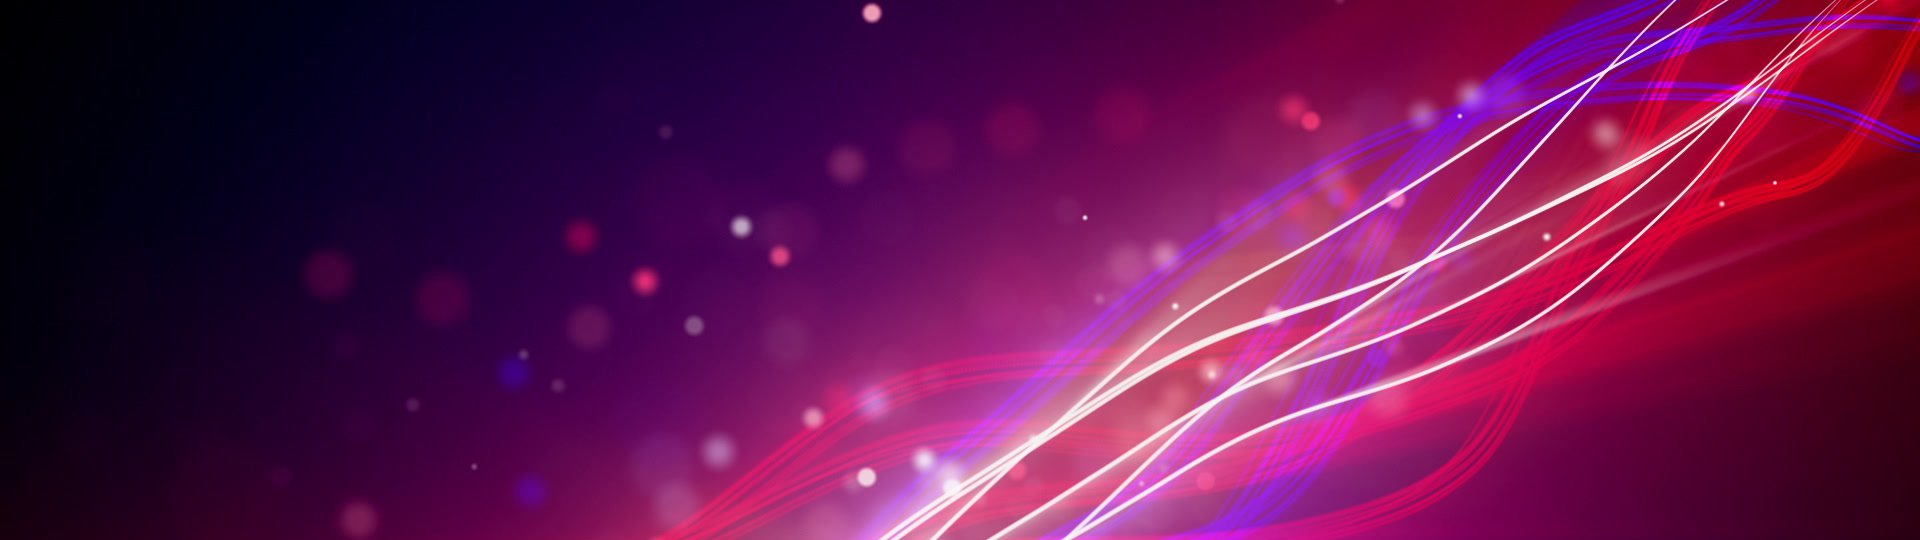 Flowing lines and particles loopable background | flowing lines and particles. computer generated seamless loop abstract motion background  - ID:19881